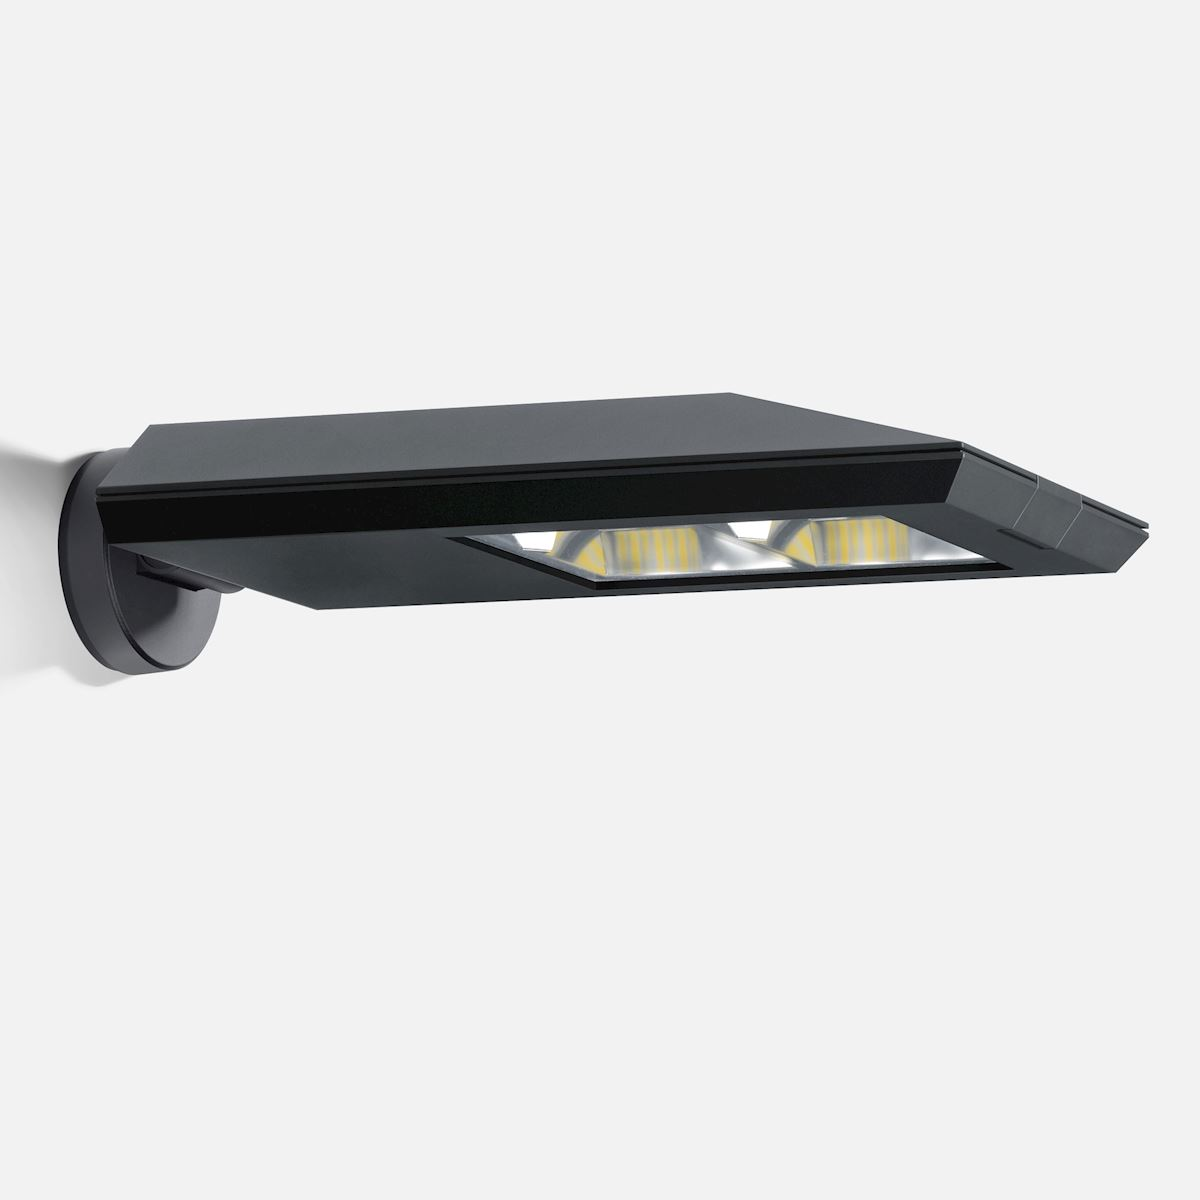 Area/roadway wall luminaire